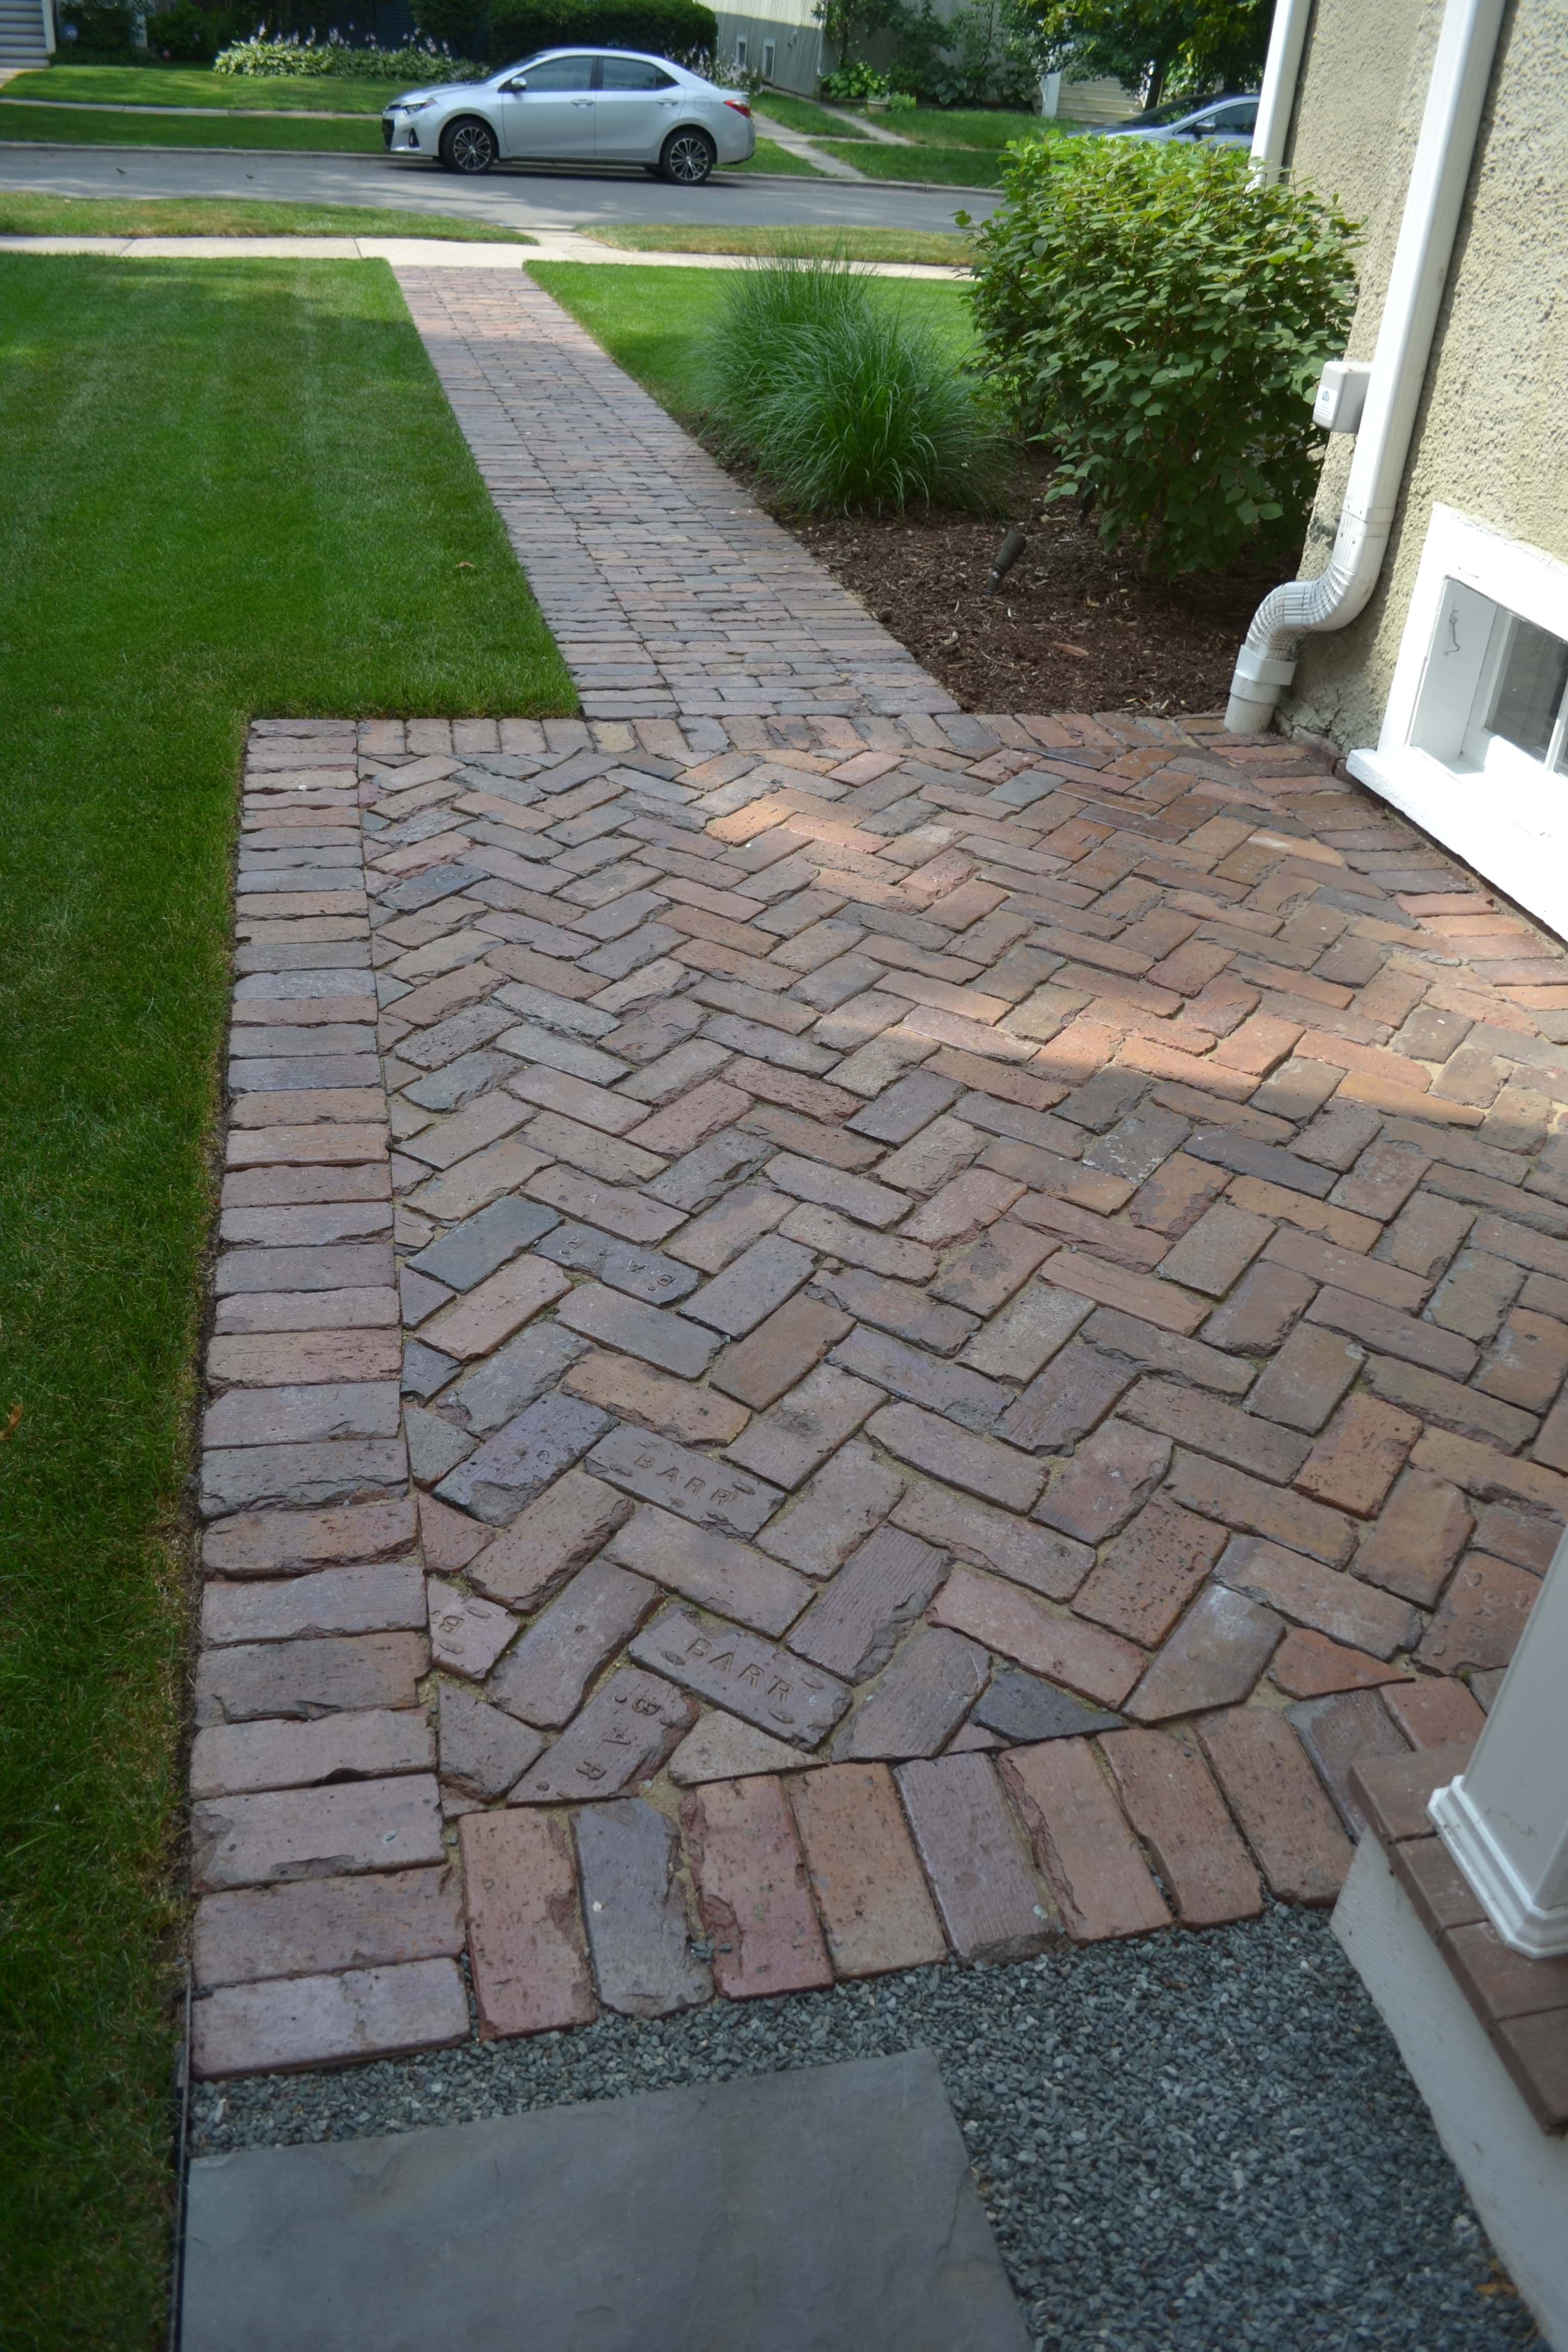 Brick Paver Patio With Fire Pit Cost: Reclaimed Barr Paver Herringbone Pattern Front Walk